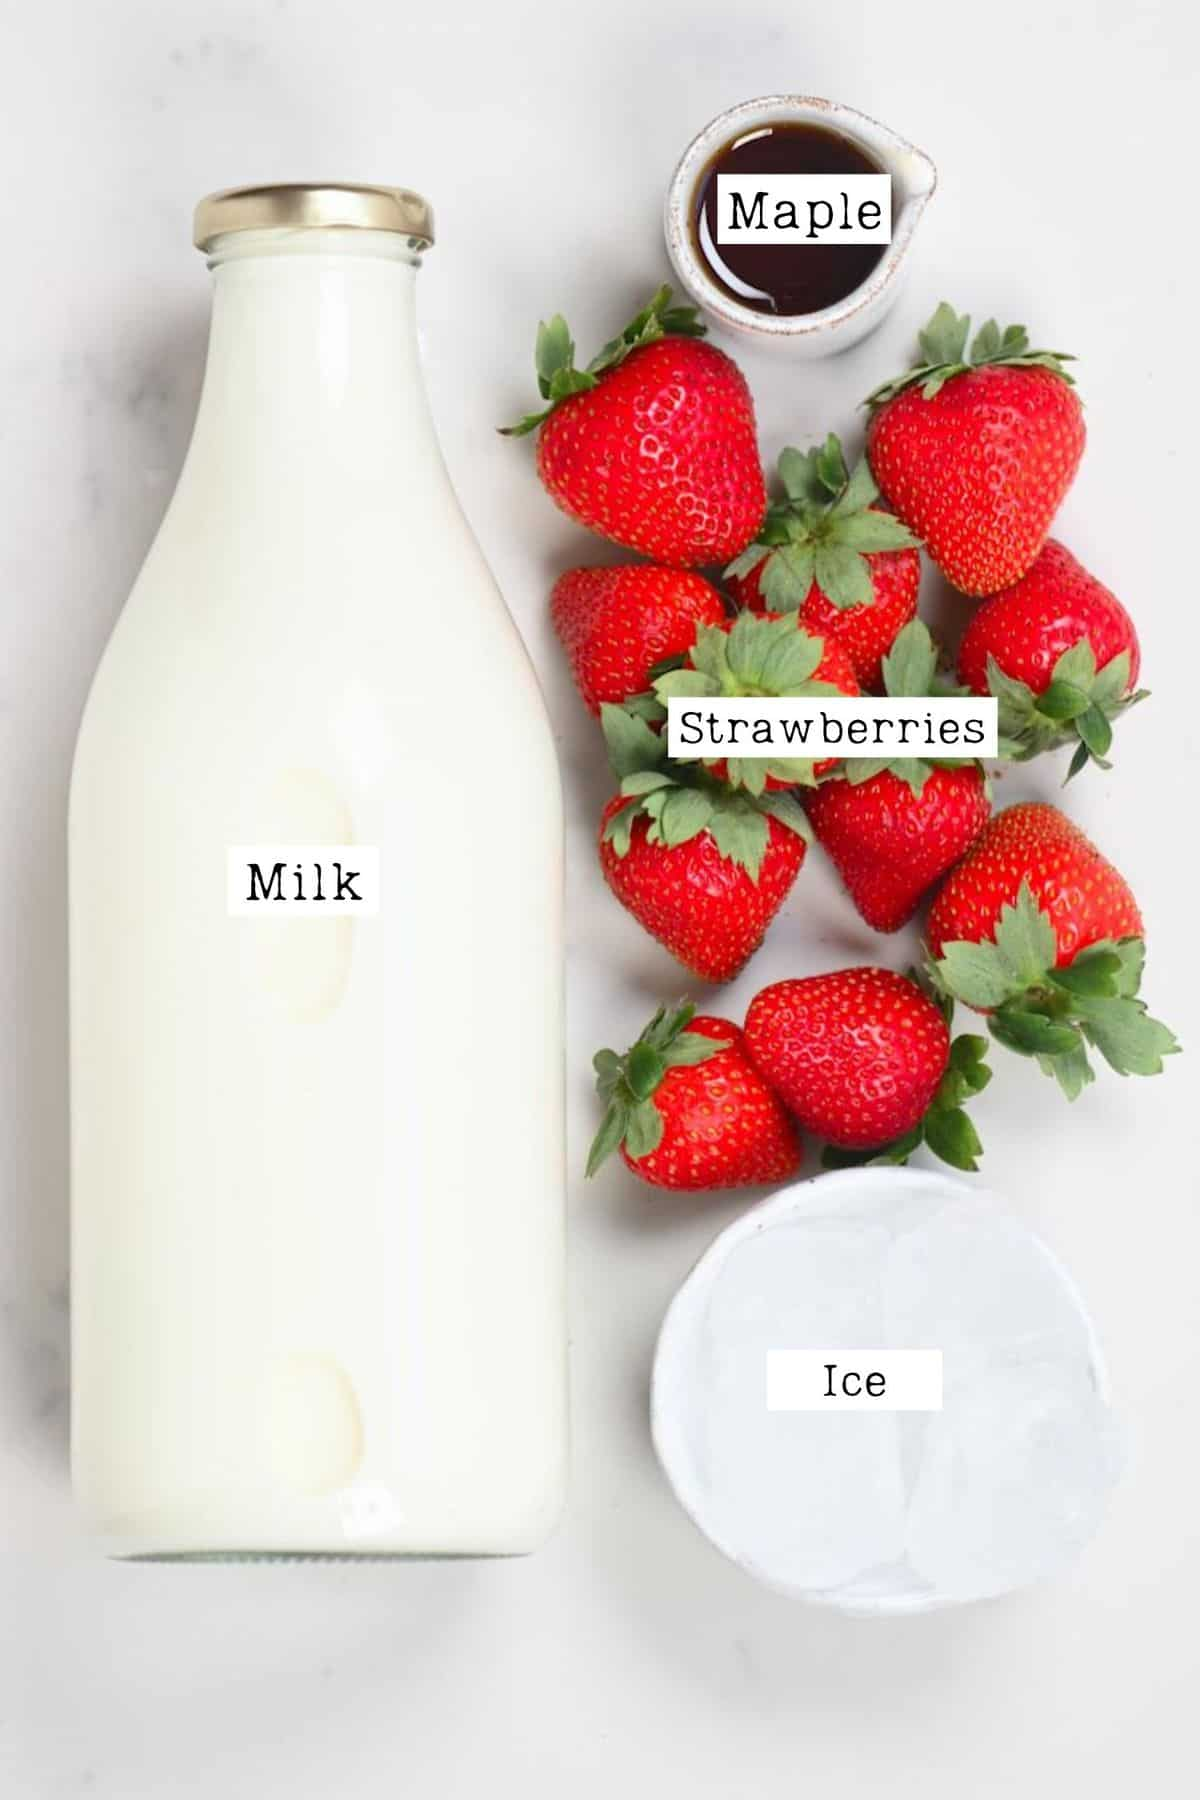 Ingredients for making strawberry Frappuccino